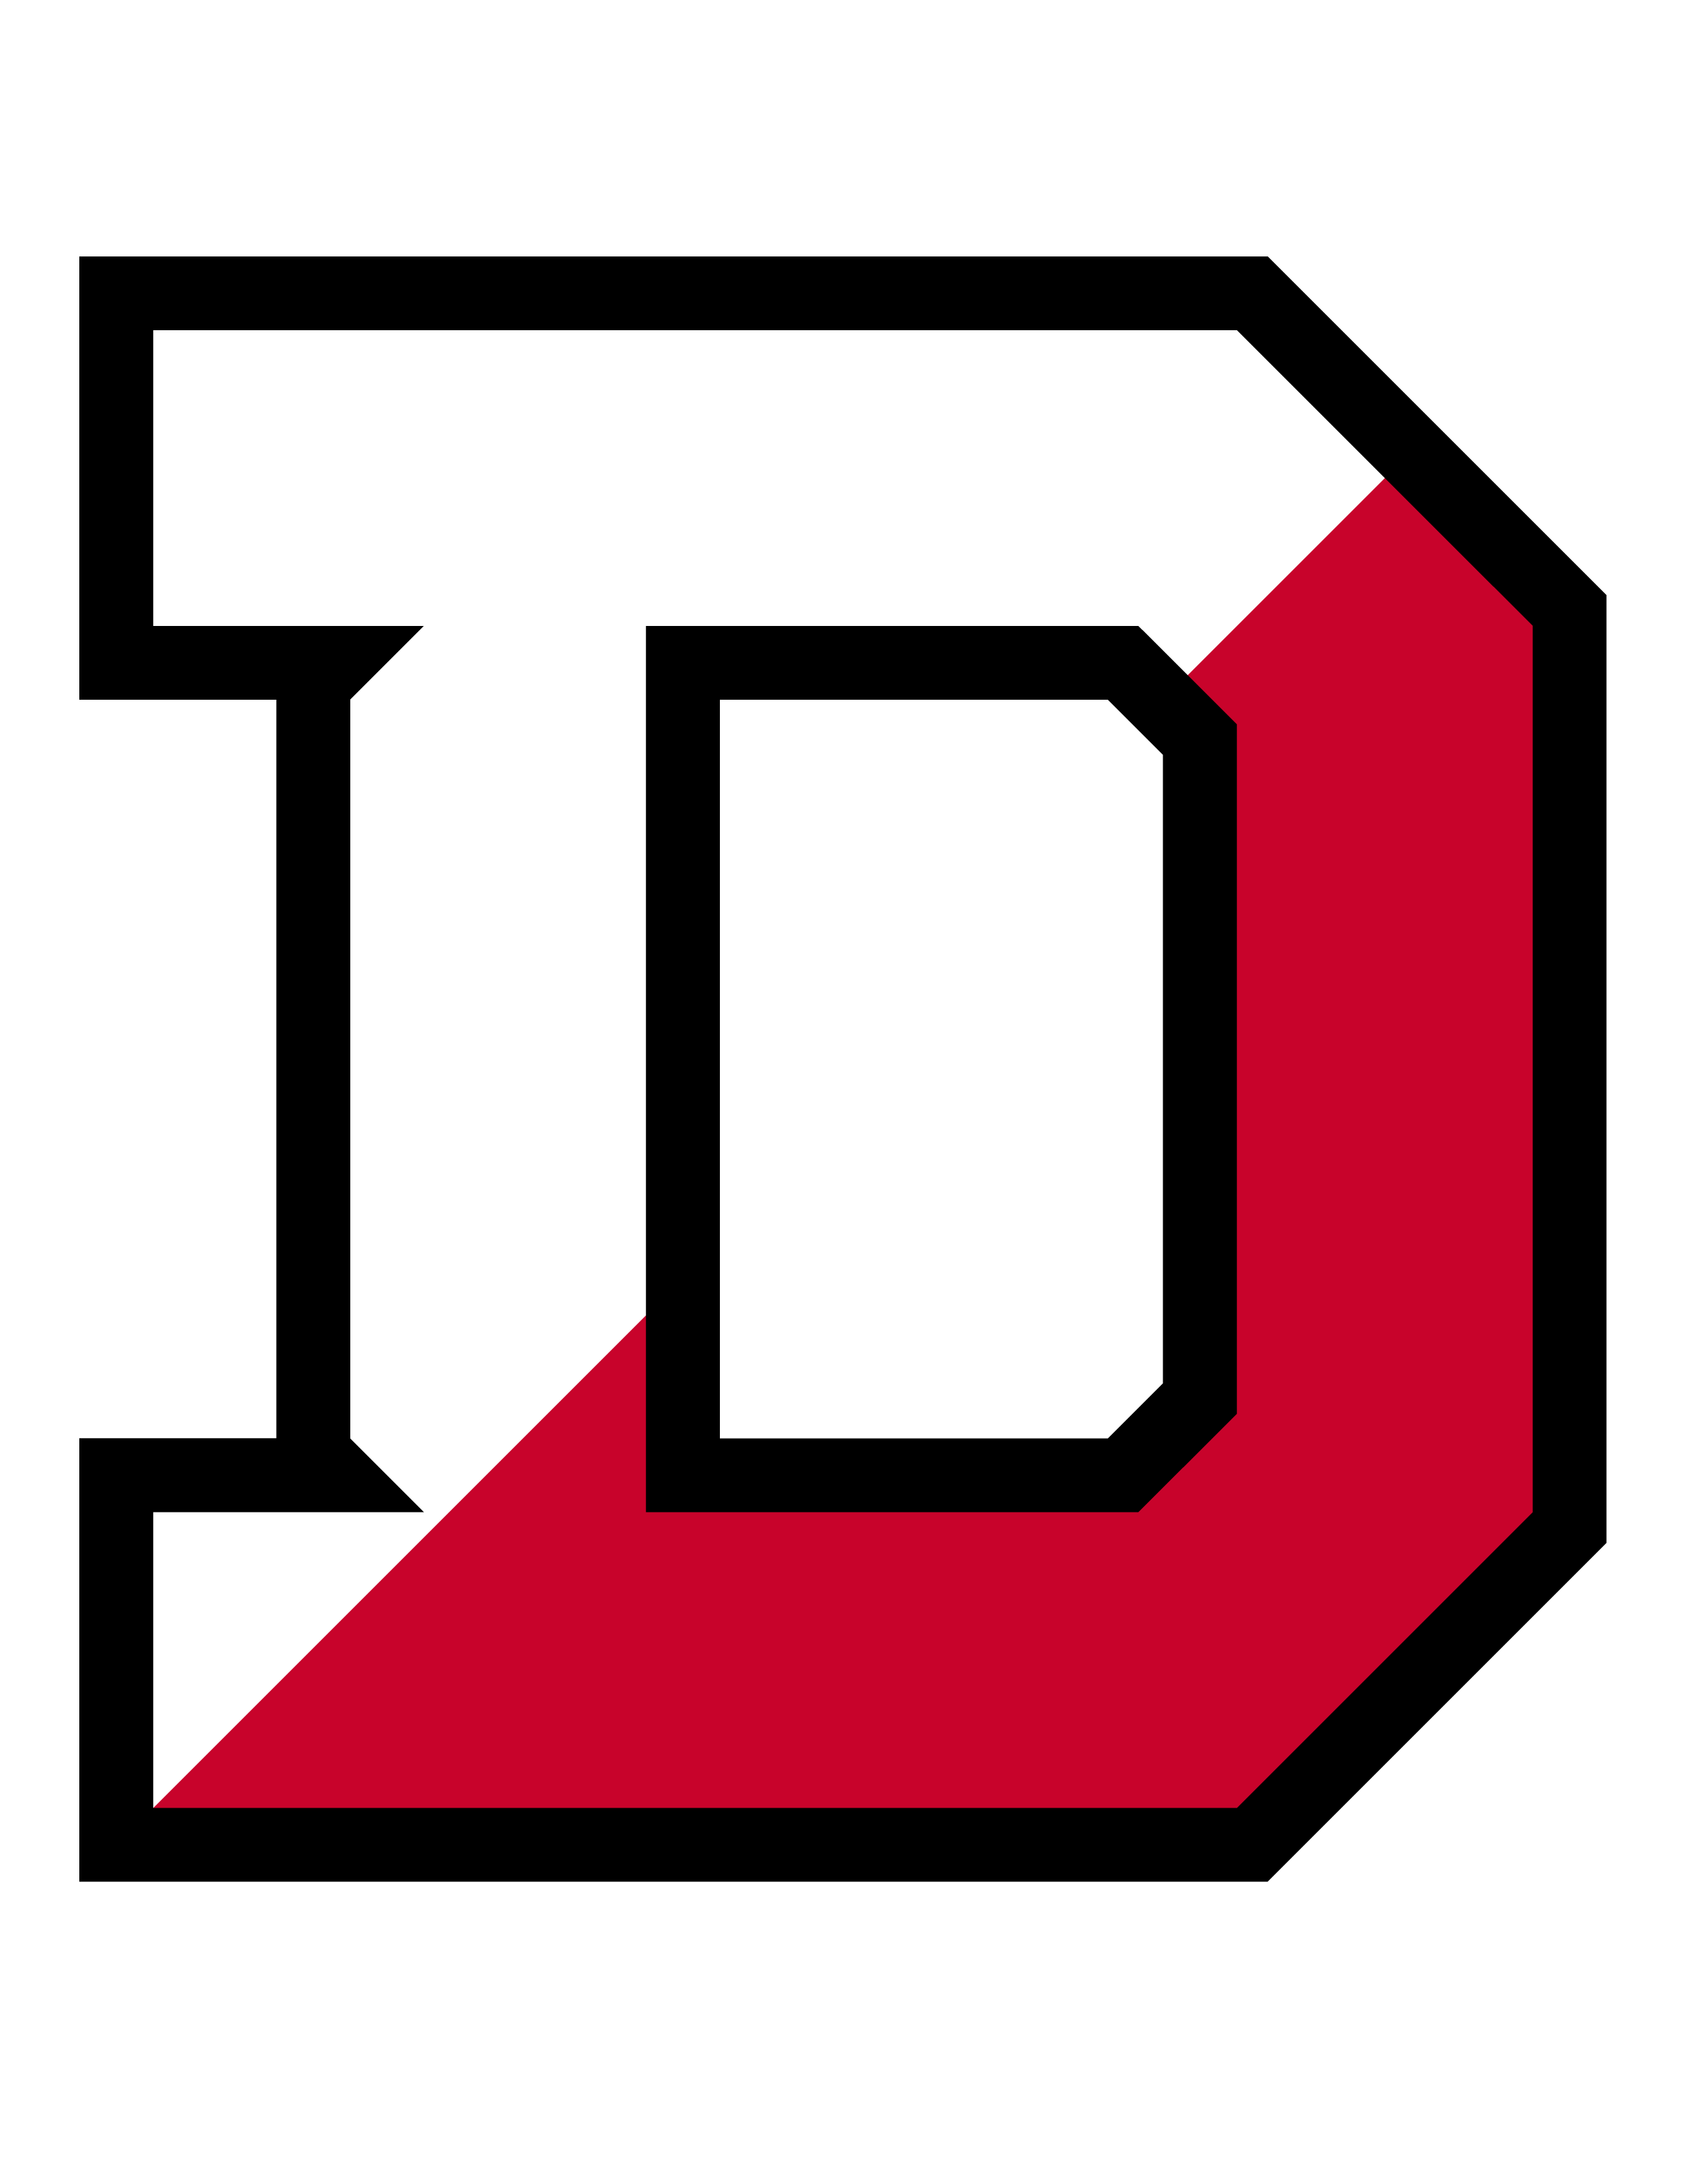 Denison Big Red Athletics logo